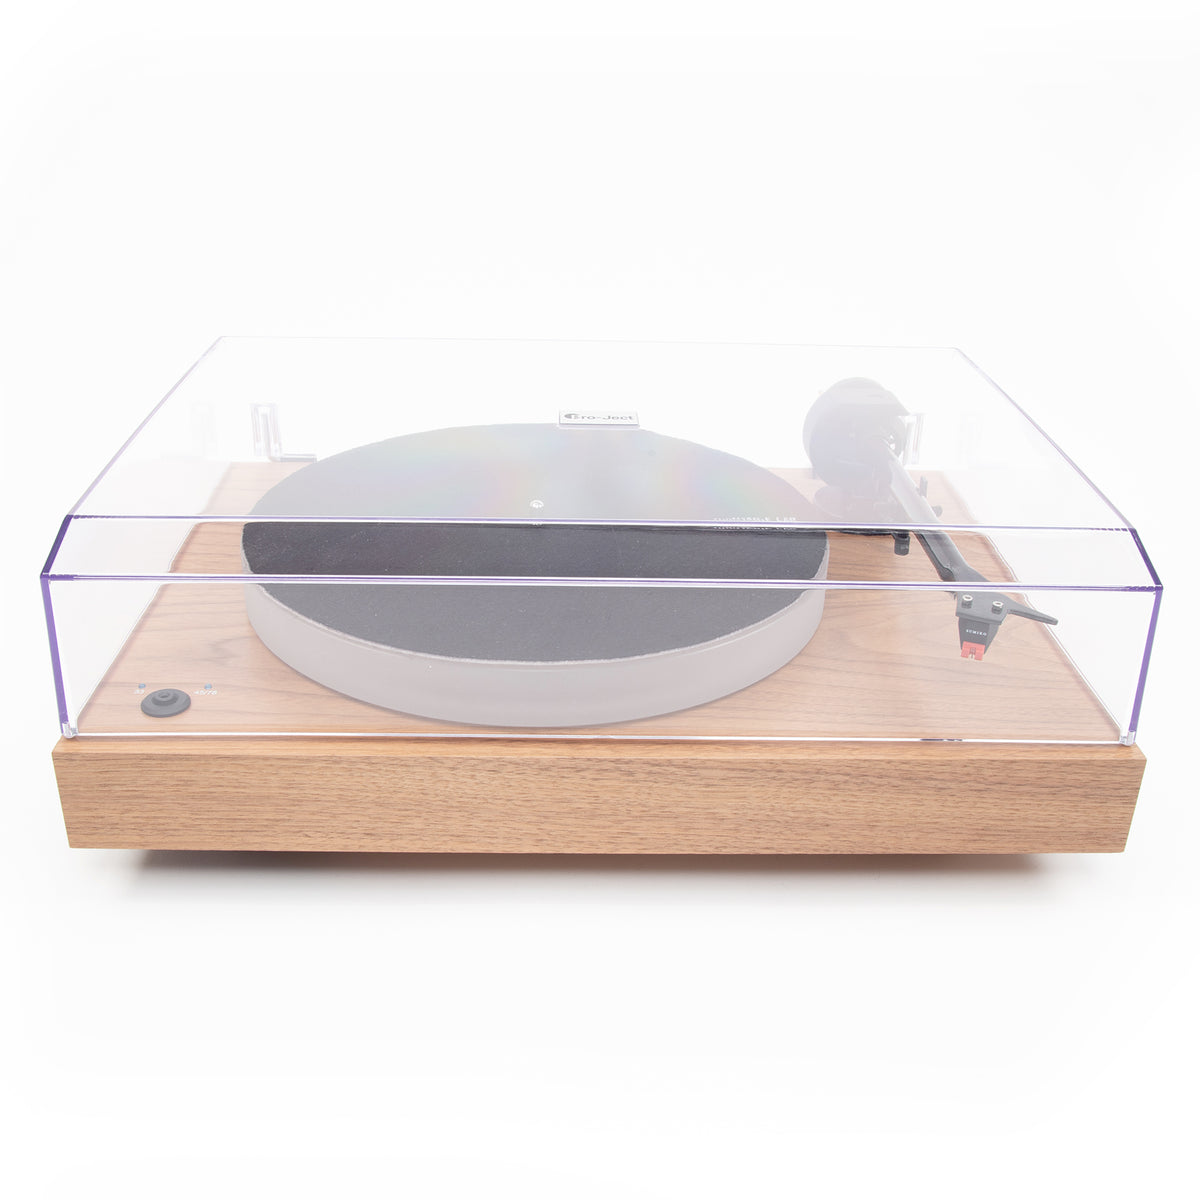 Pro-Ject: X2 Turntable - Matte Black